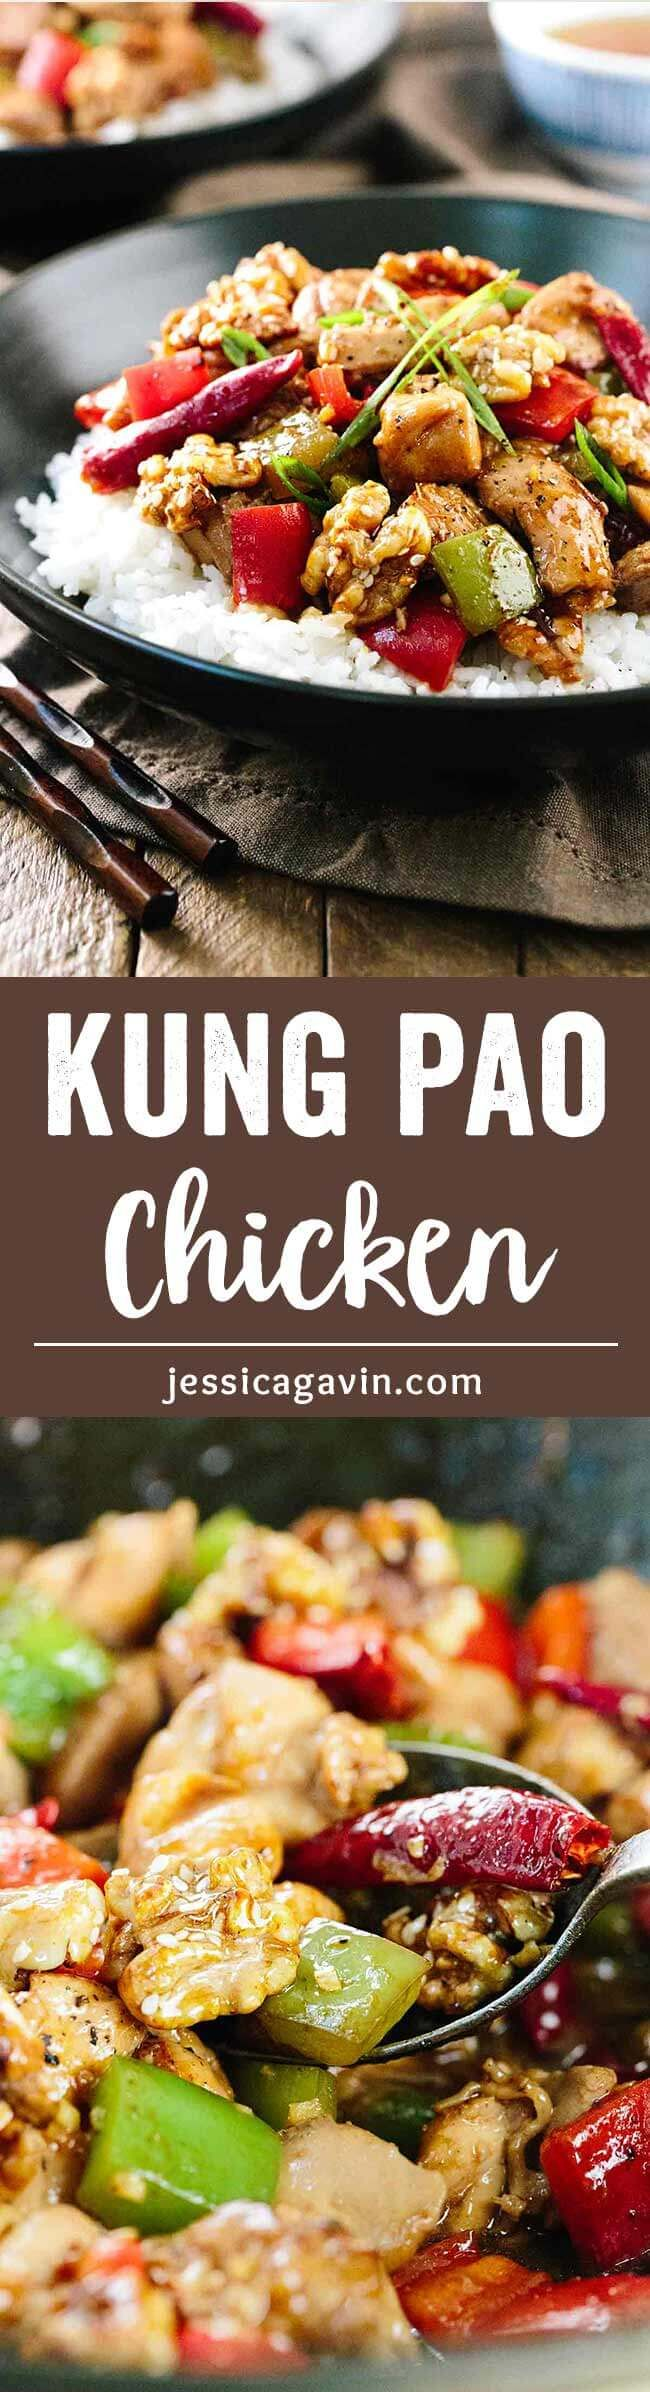 Kung Pao Chicken with Honey Glazed Walnuts - No need for take-out with this popular homemade Chinese recipe, get the meal you crave without all the extra fast food mystery ingredients. via @foodiegavin